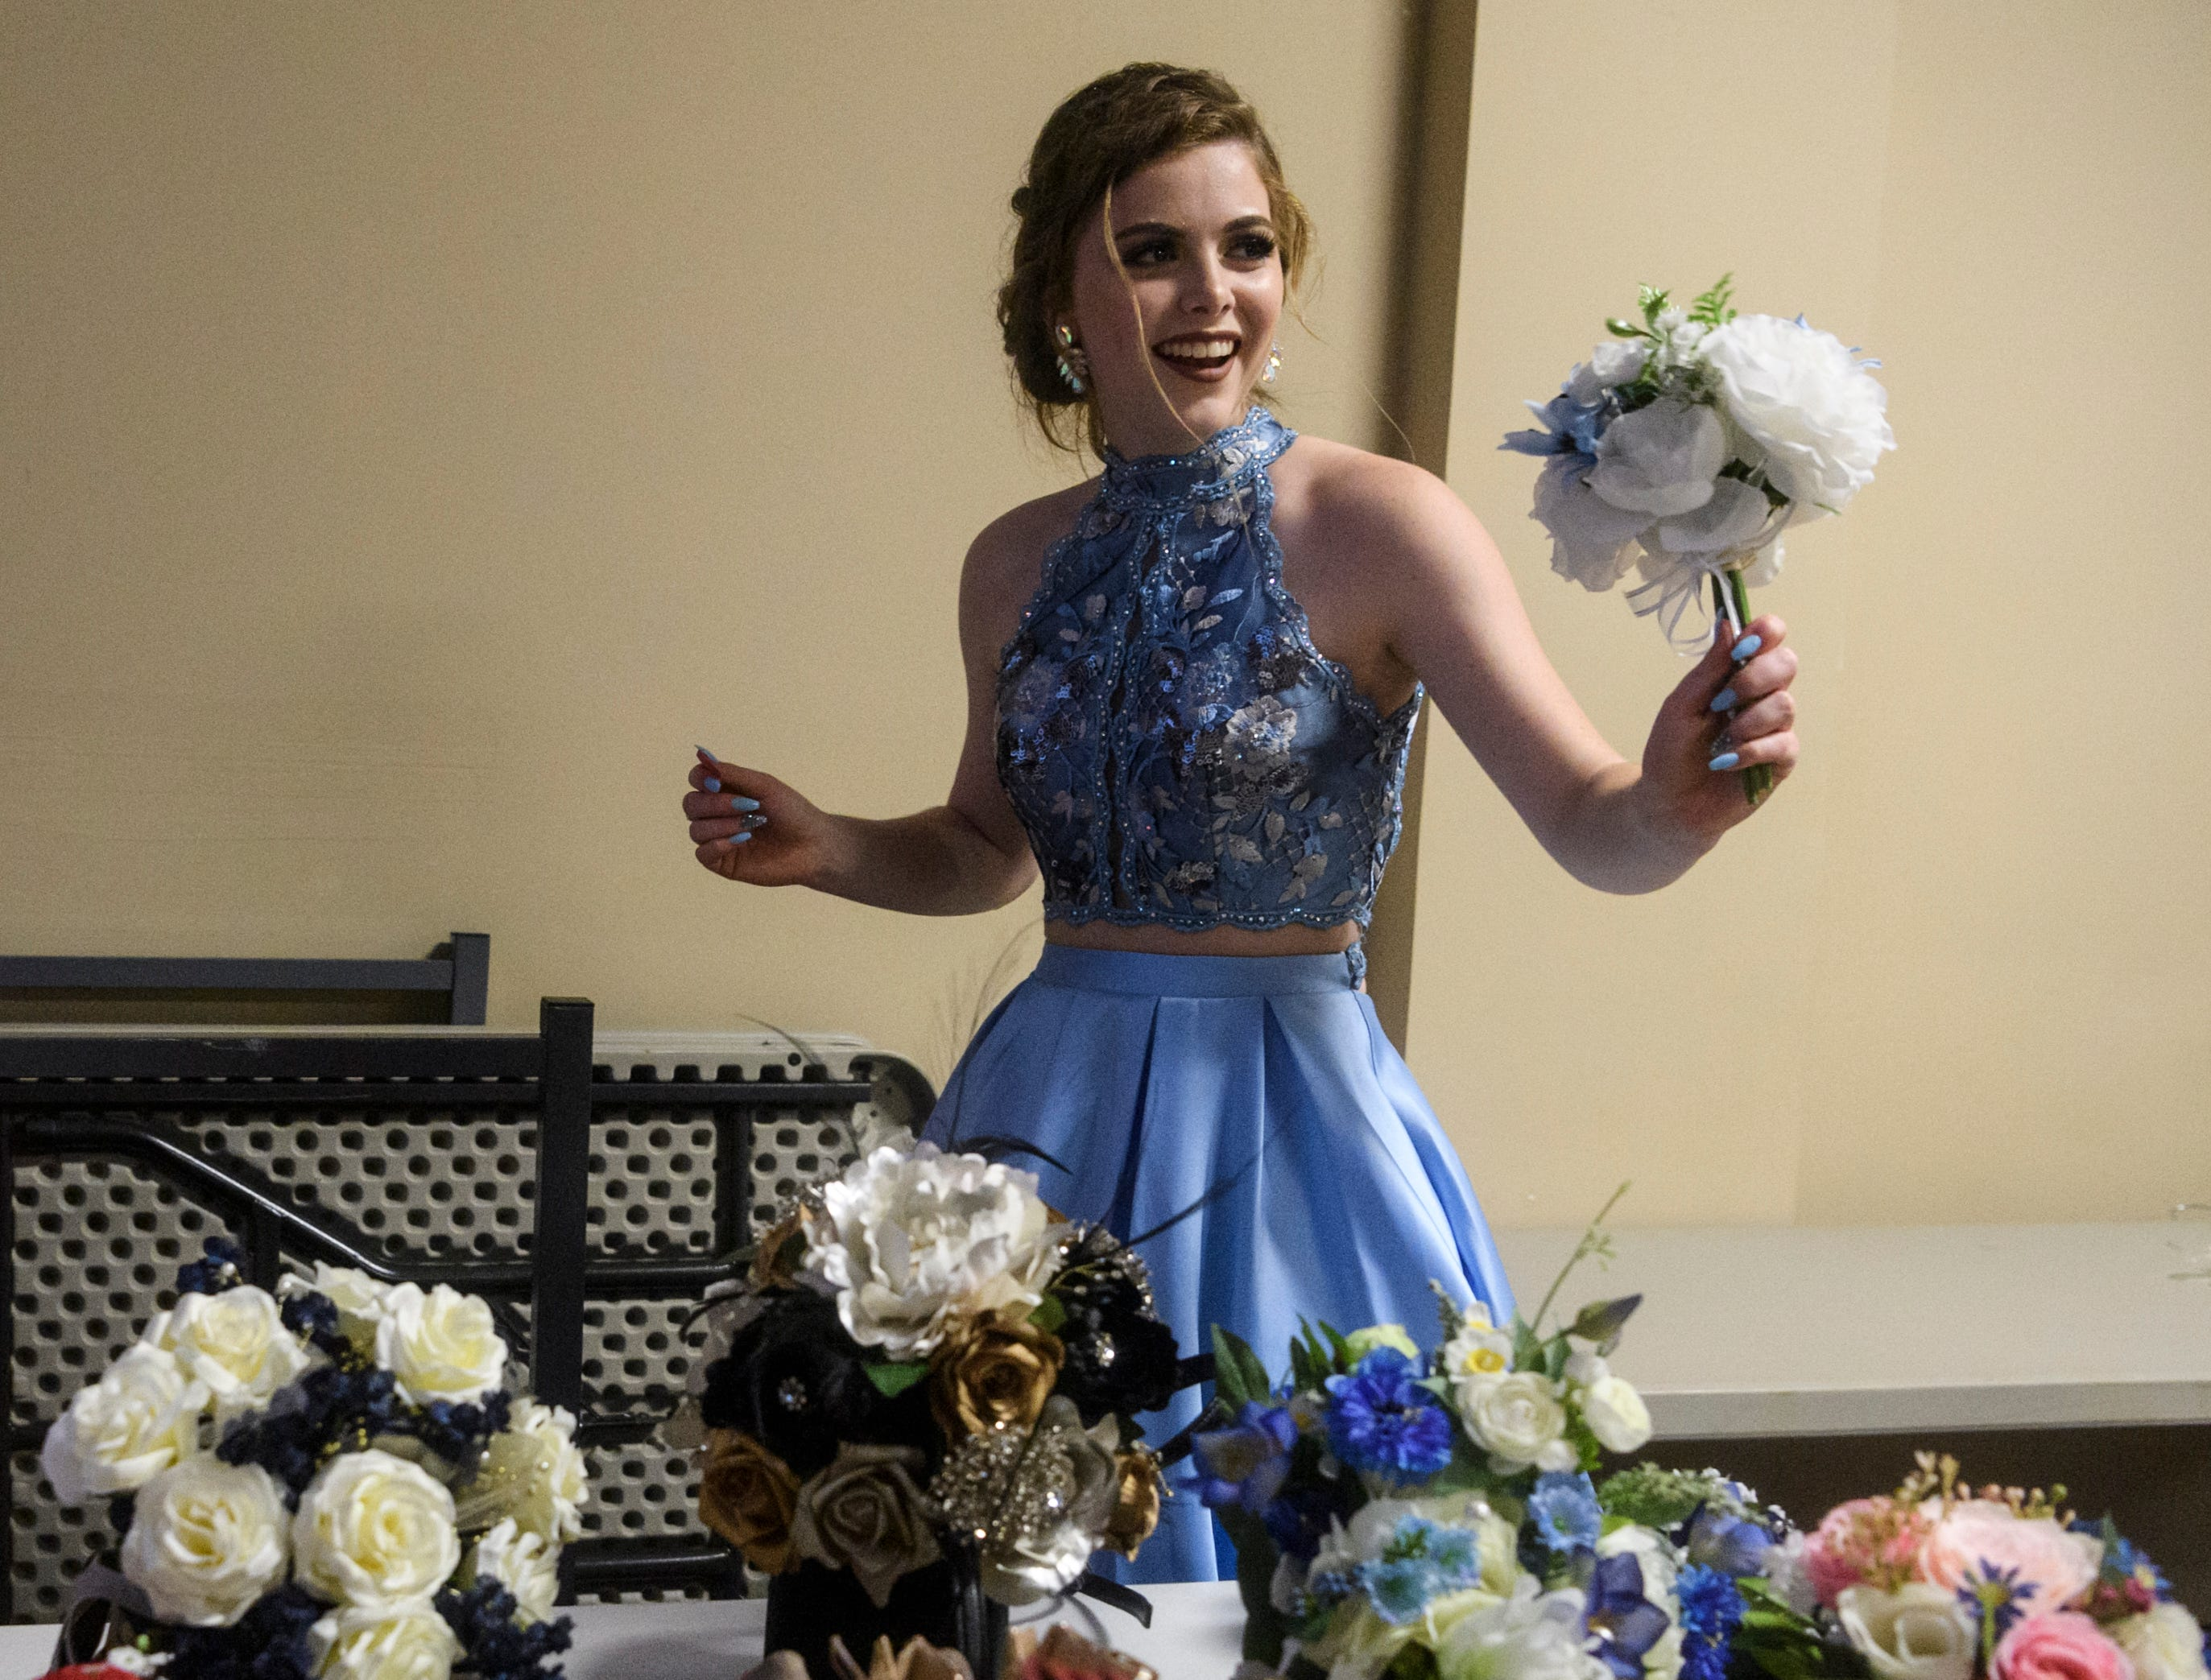 North Posey student Haylee Gengelbach puts her bouquet with her shoes and purse before going out on the dance floor during her prom held at the Ribeyre Center in New Harmony, Ind., Saturday, May 4, 2019.